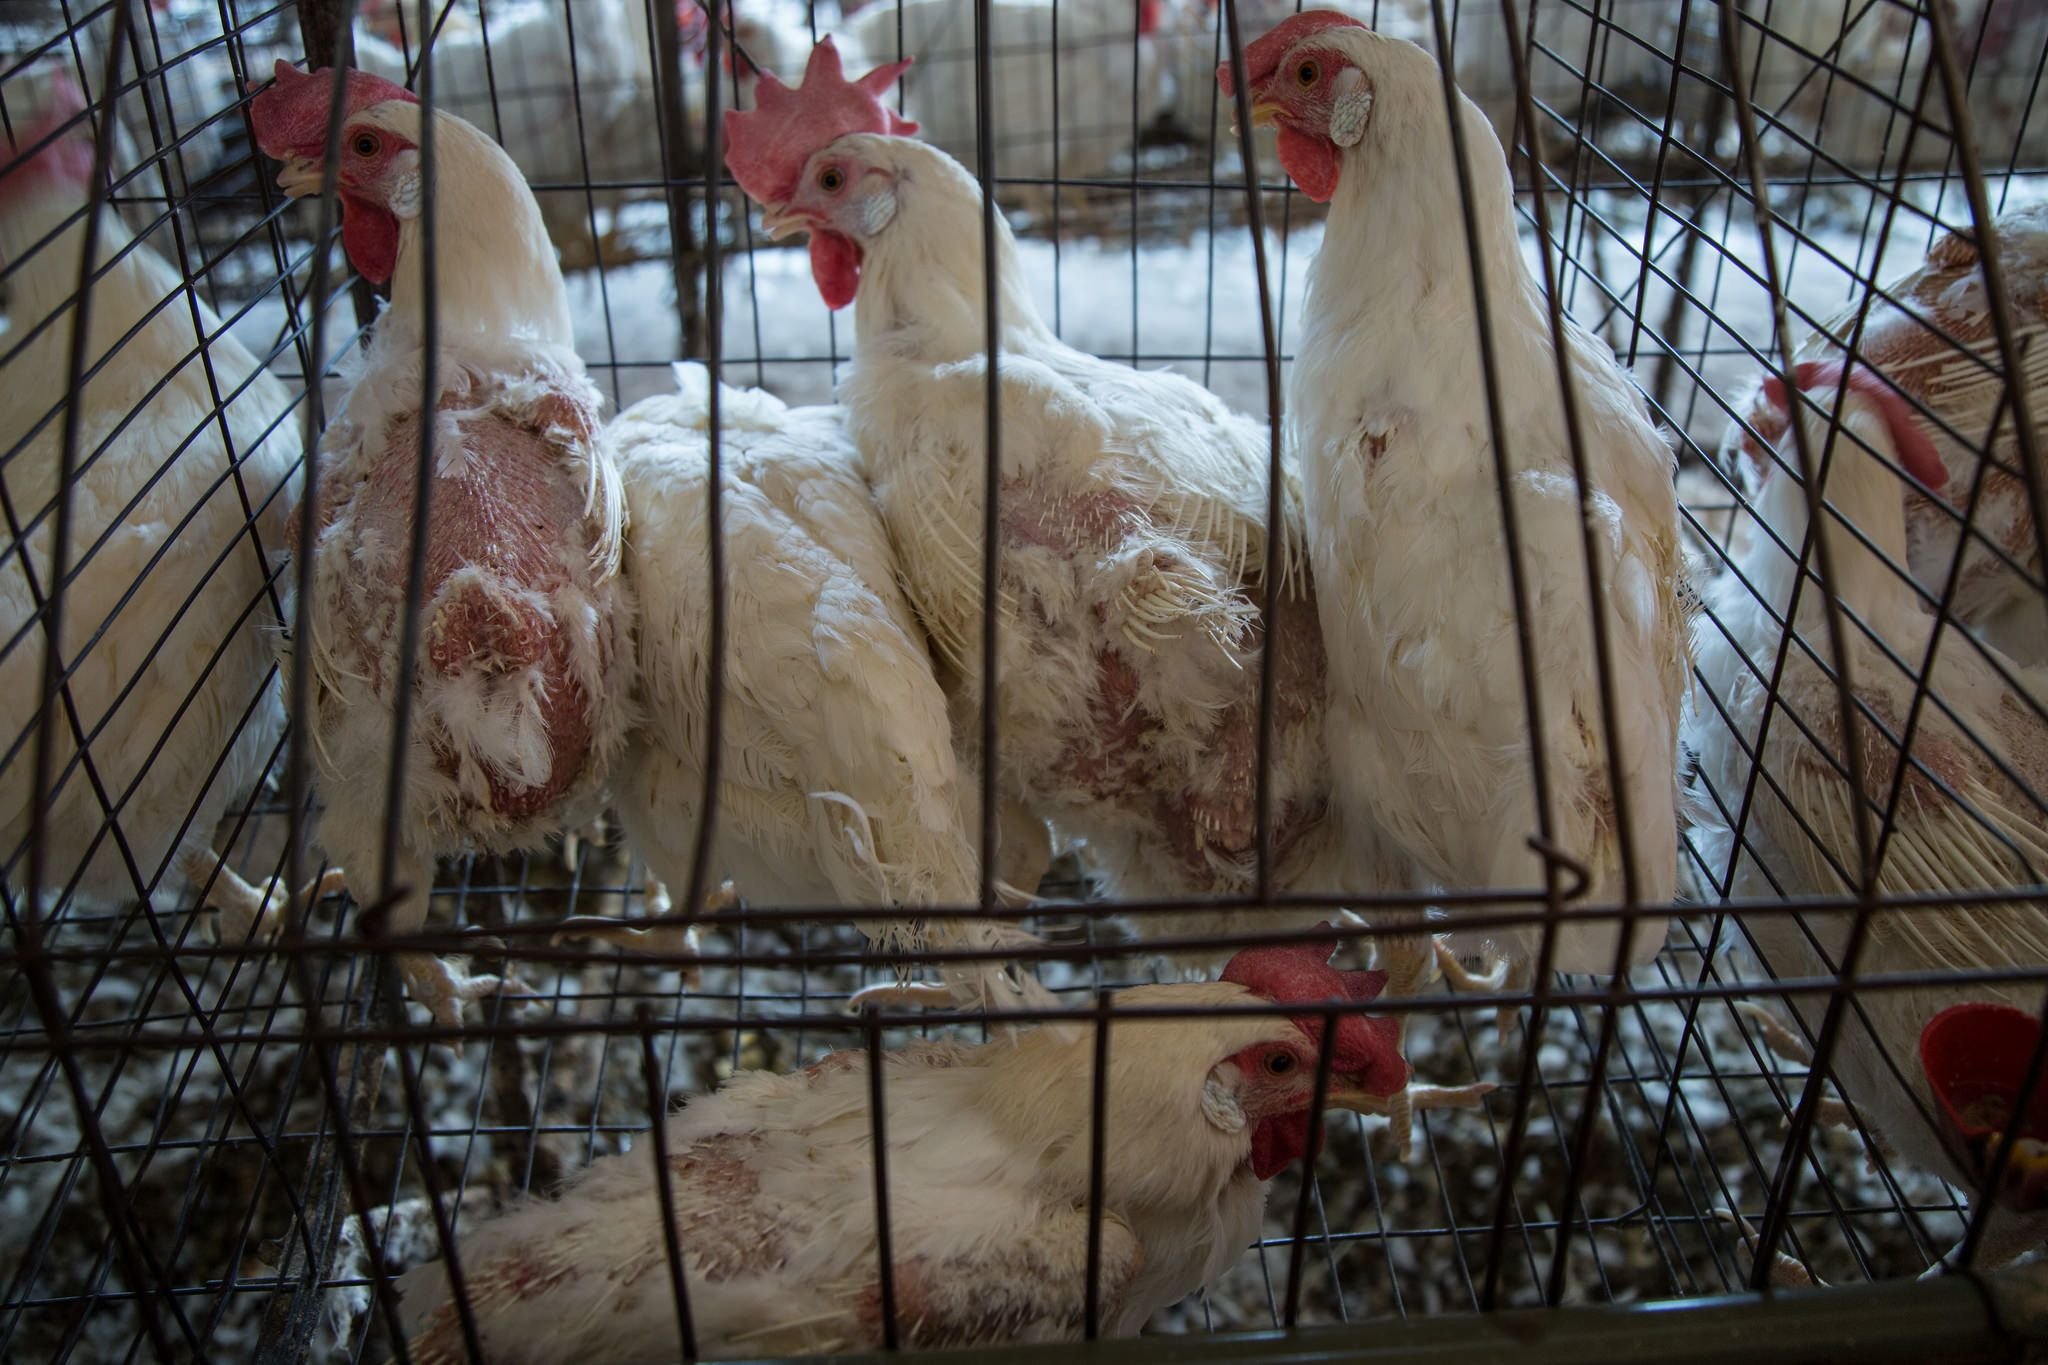 Hens at a factory farm in Mexico are forced to molt to improve egg production.